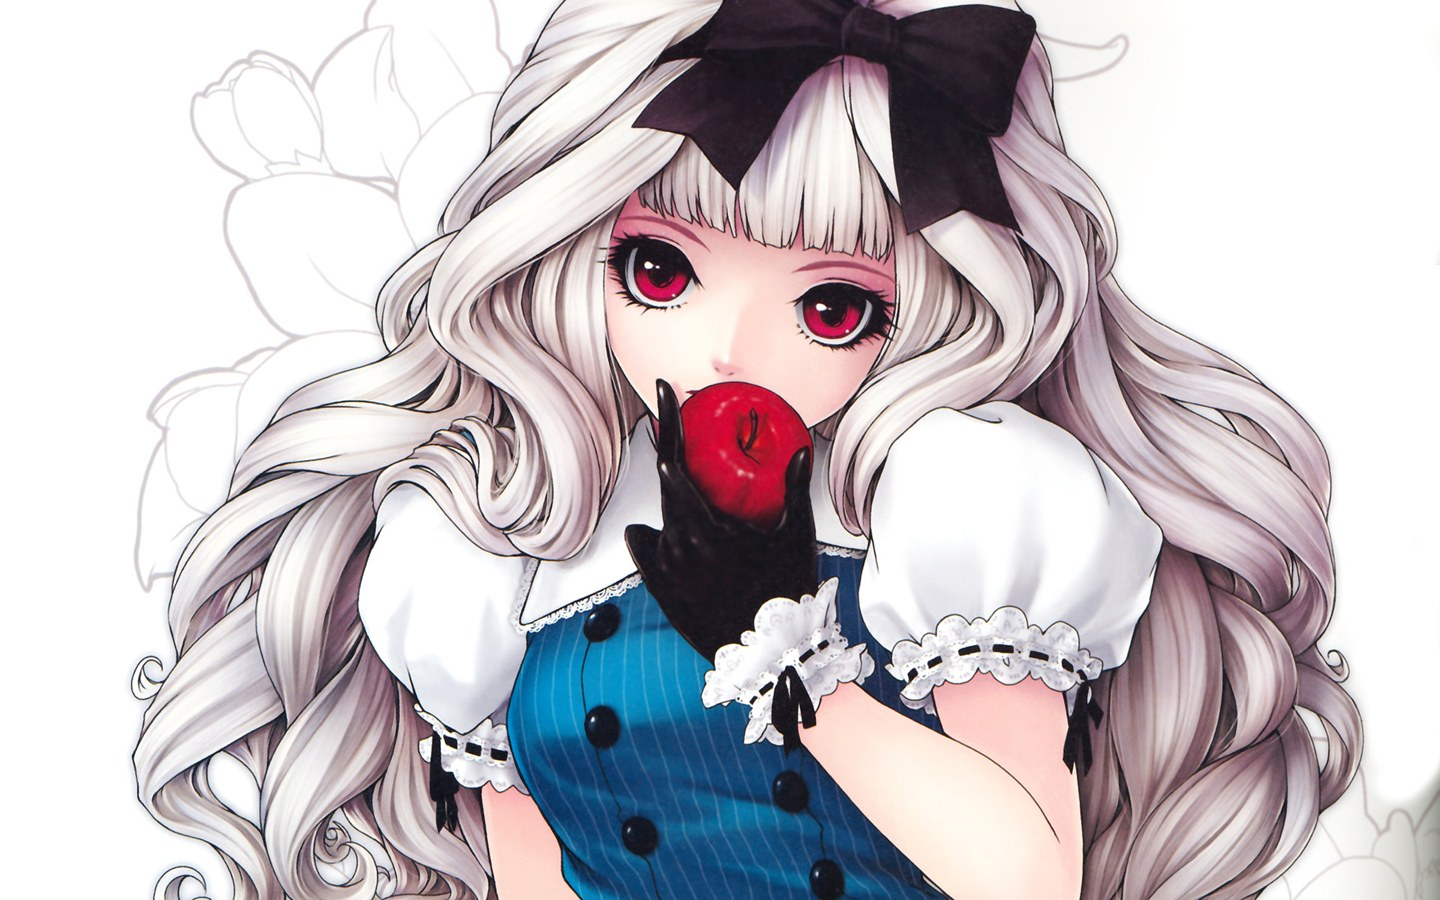 English Cat Beautiful and Cute Anime Girls Wallpapers for Desktop 1440x900